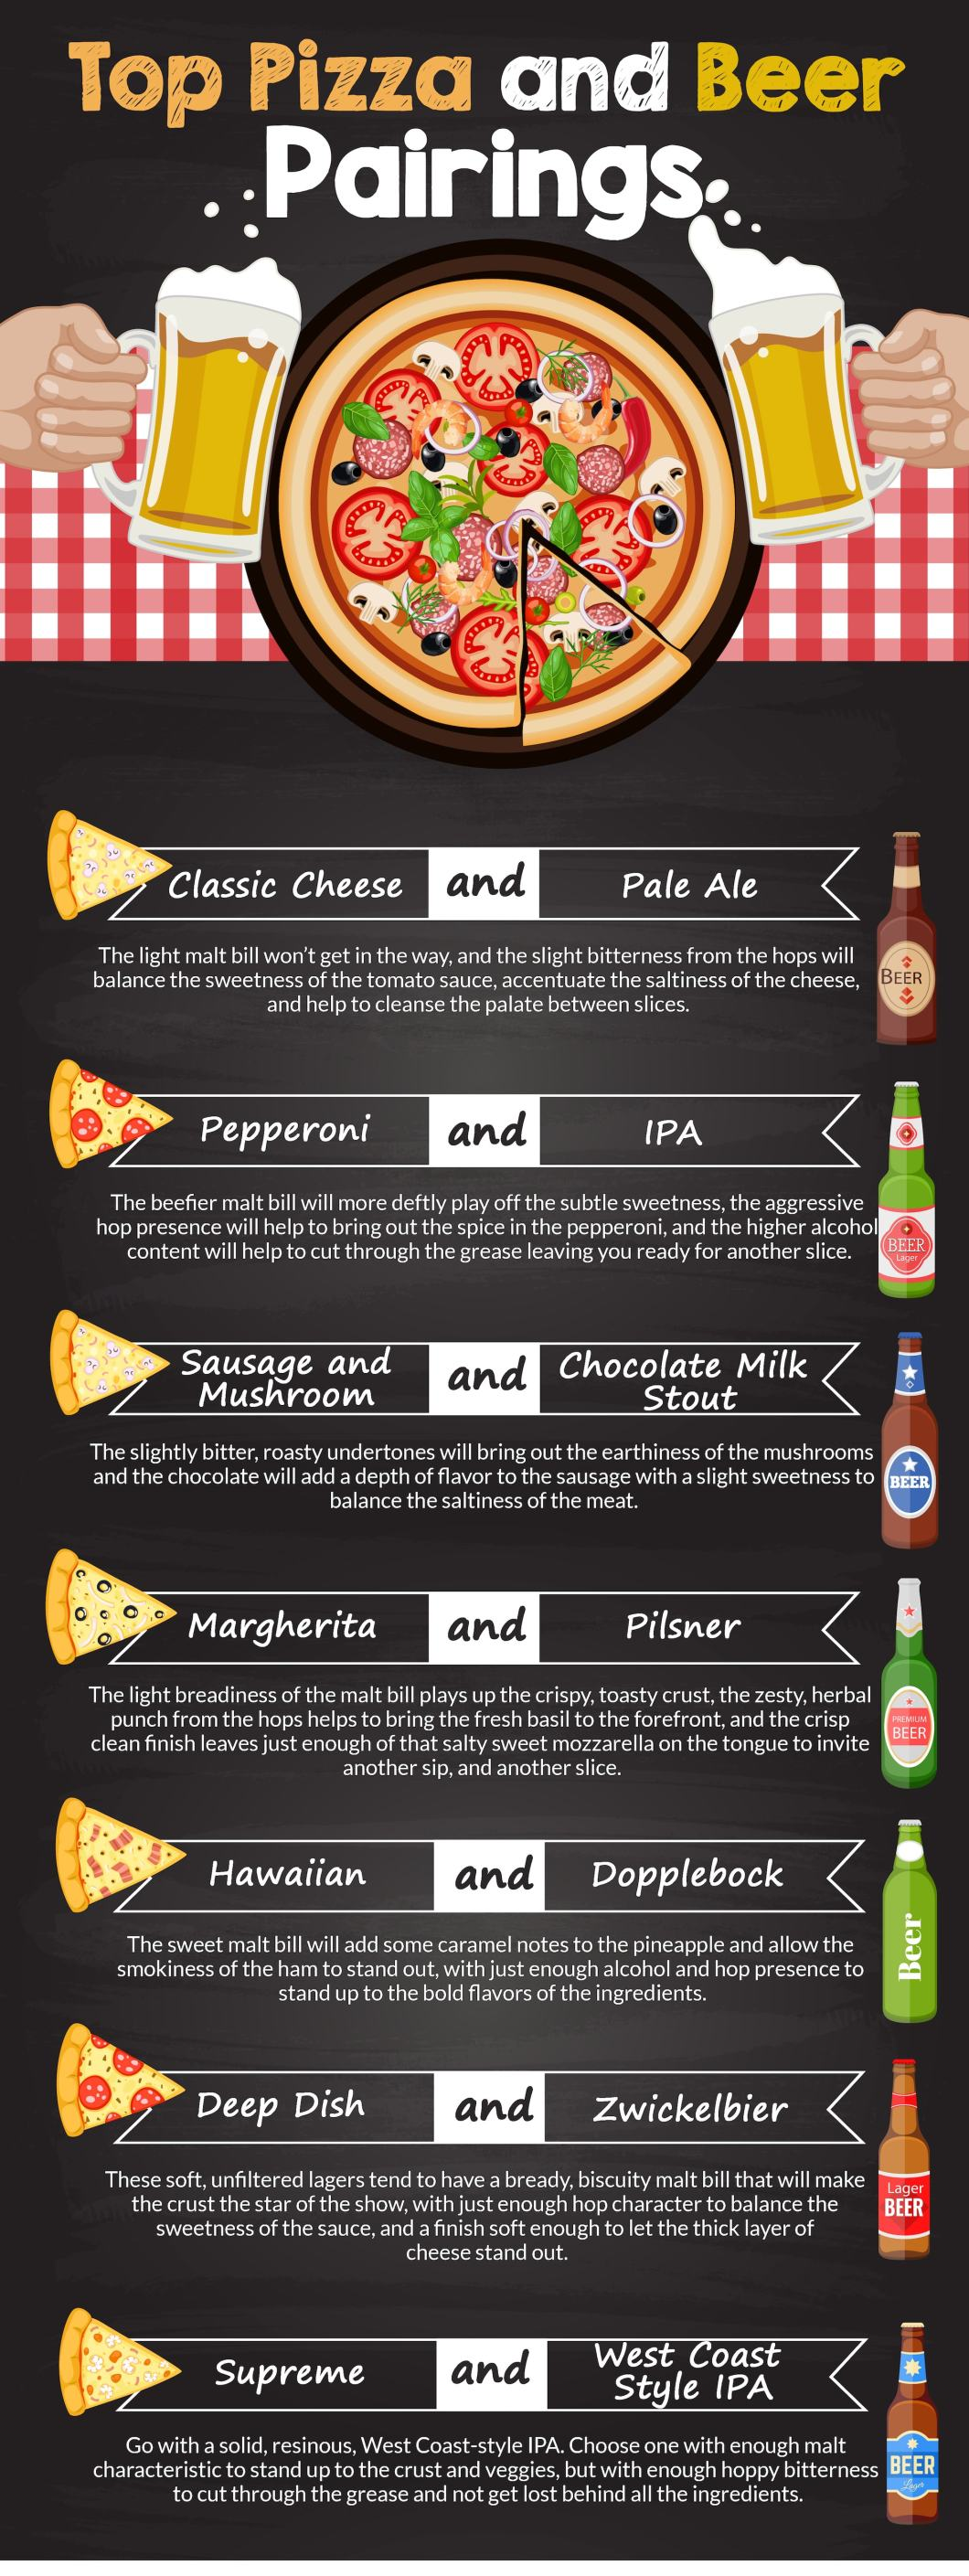 Pizza and Beer Pairings: Matches Made in Food Heaven - Infographic